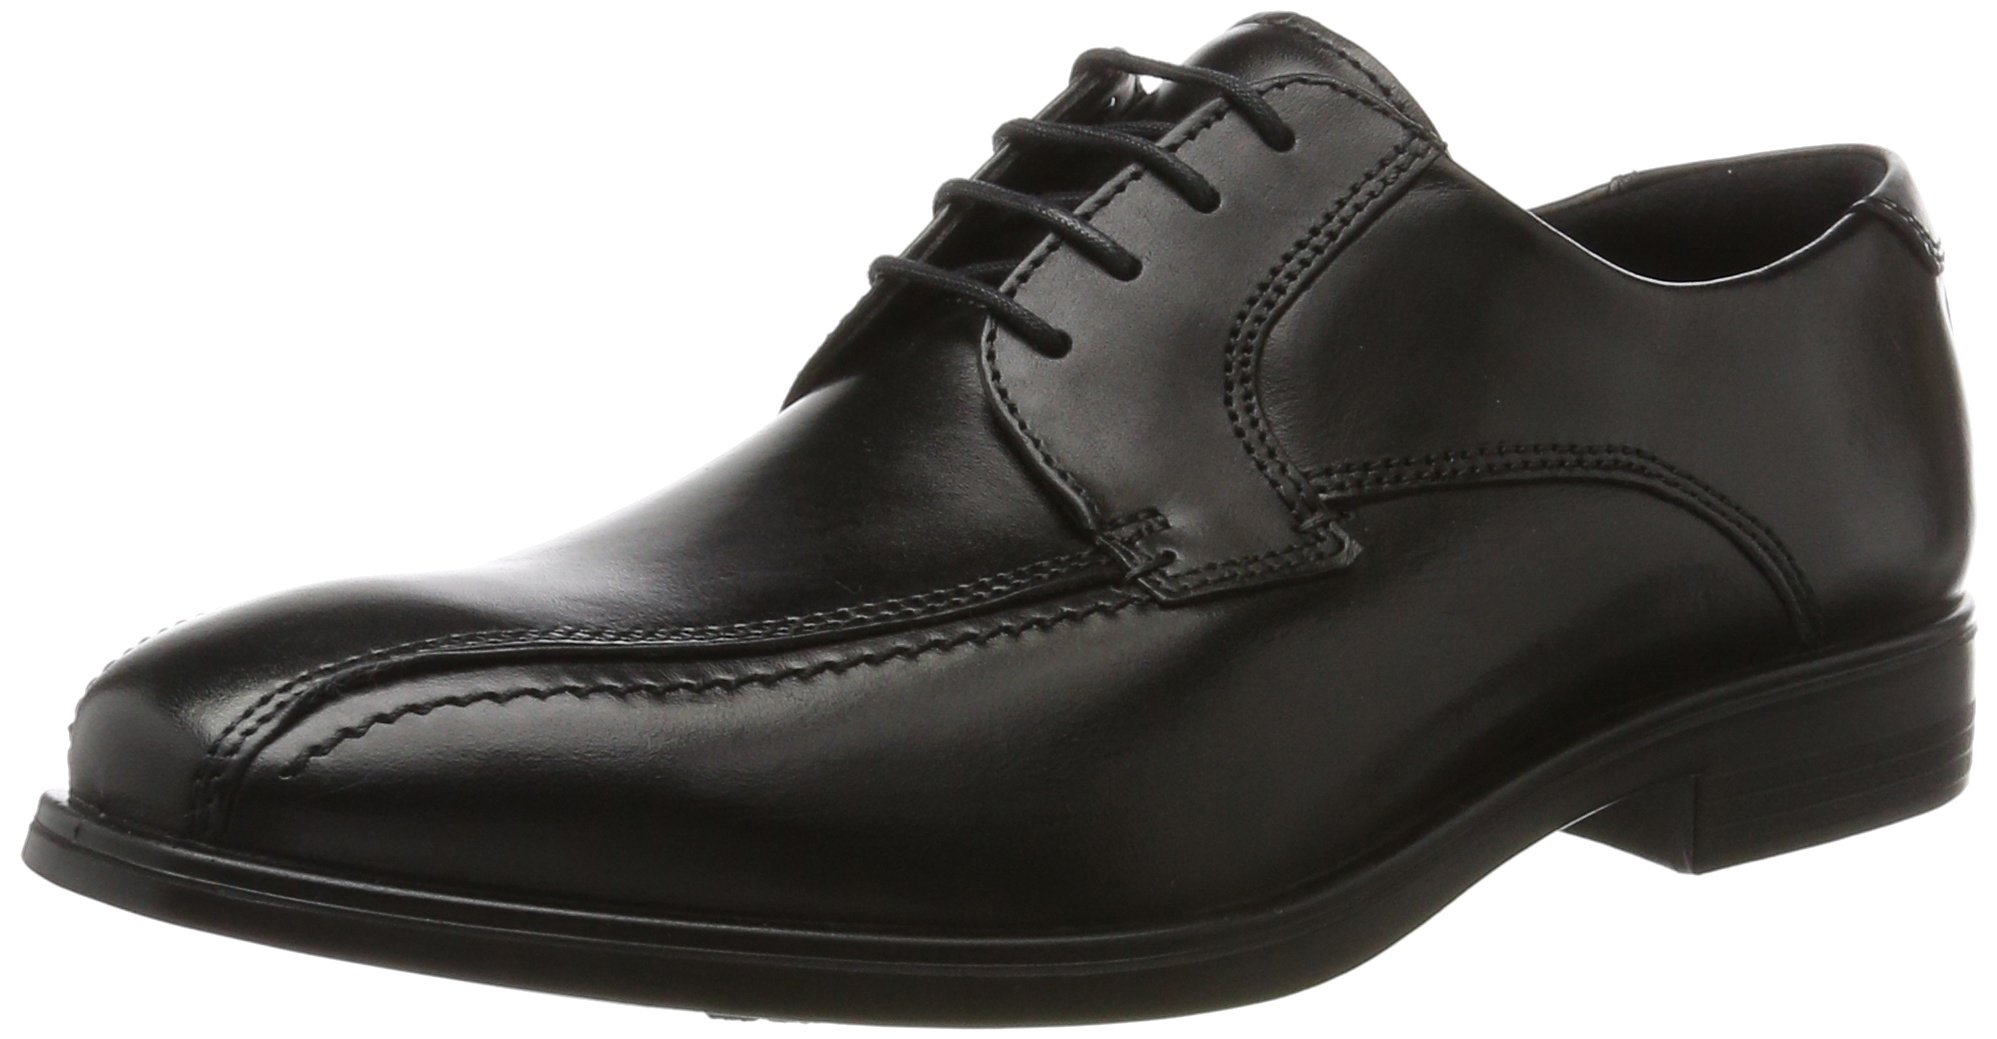 ECCO Men's Melbourne Bike Tie Oxford, Black, 41 EU/7-7.5 M US